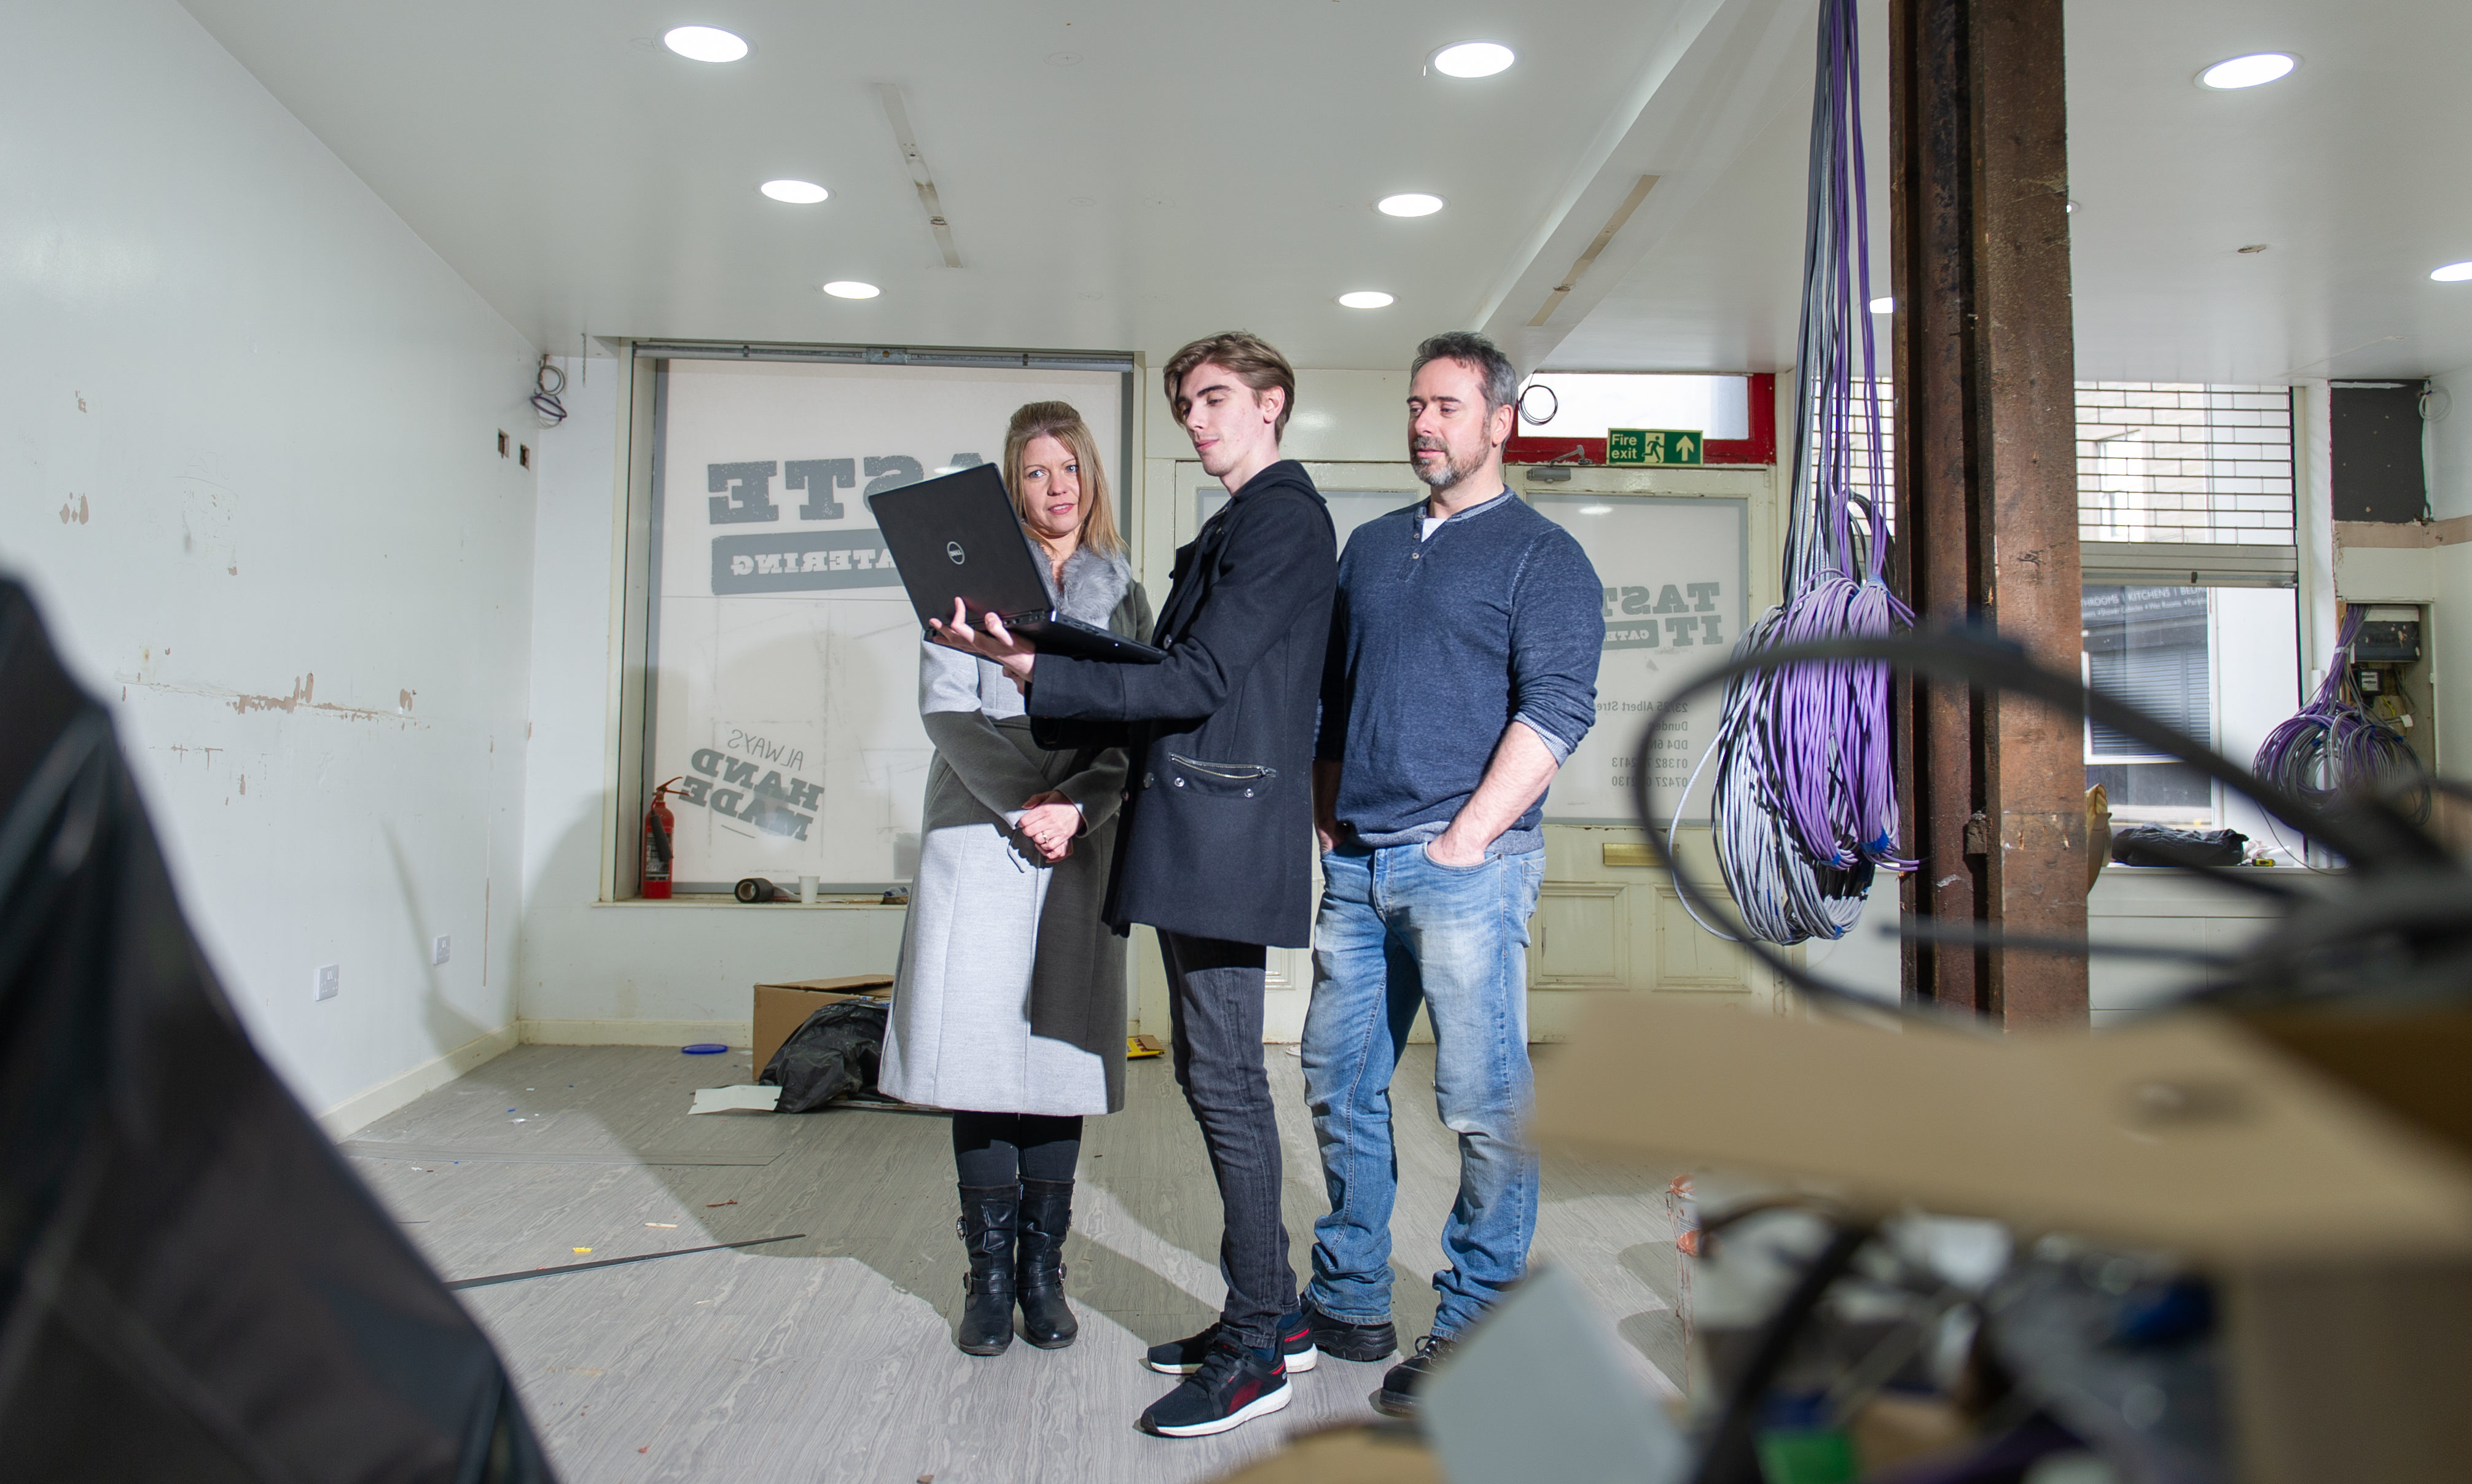 Ashley Donaldson, Drew Douglas and Gavin Innes in the retail unit which is being transformed into a computer games hub.